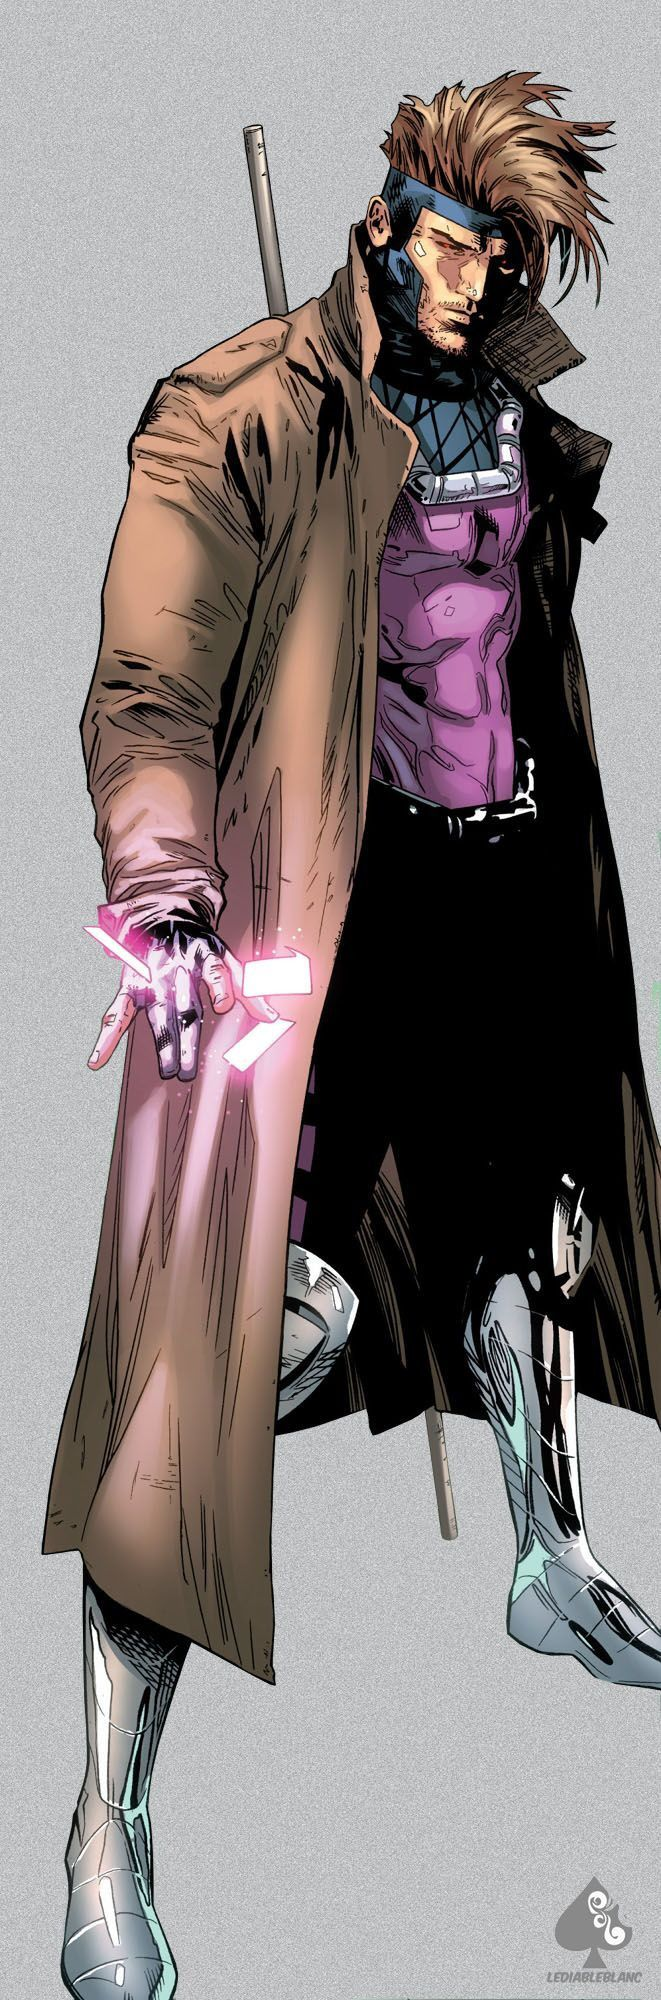 I love Gambit. He makes me kinda weak in the knees... BUT I will still submit that Taylor Kitsch had the better look and I will admit that I'm worried Channing will ruin it.